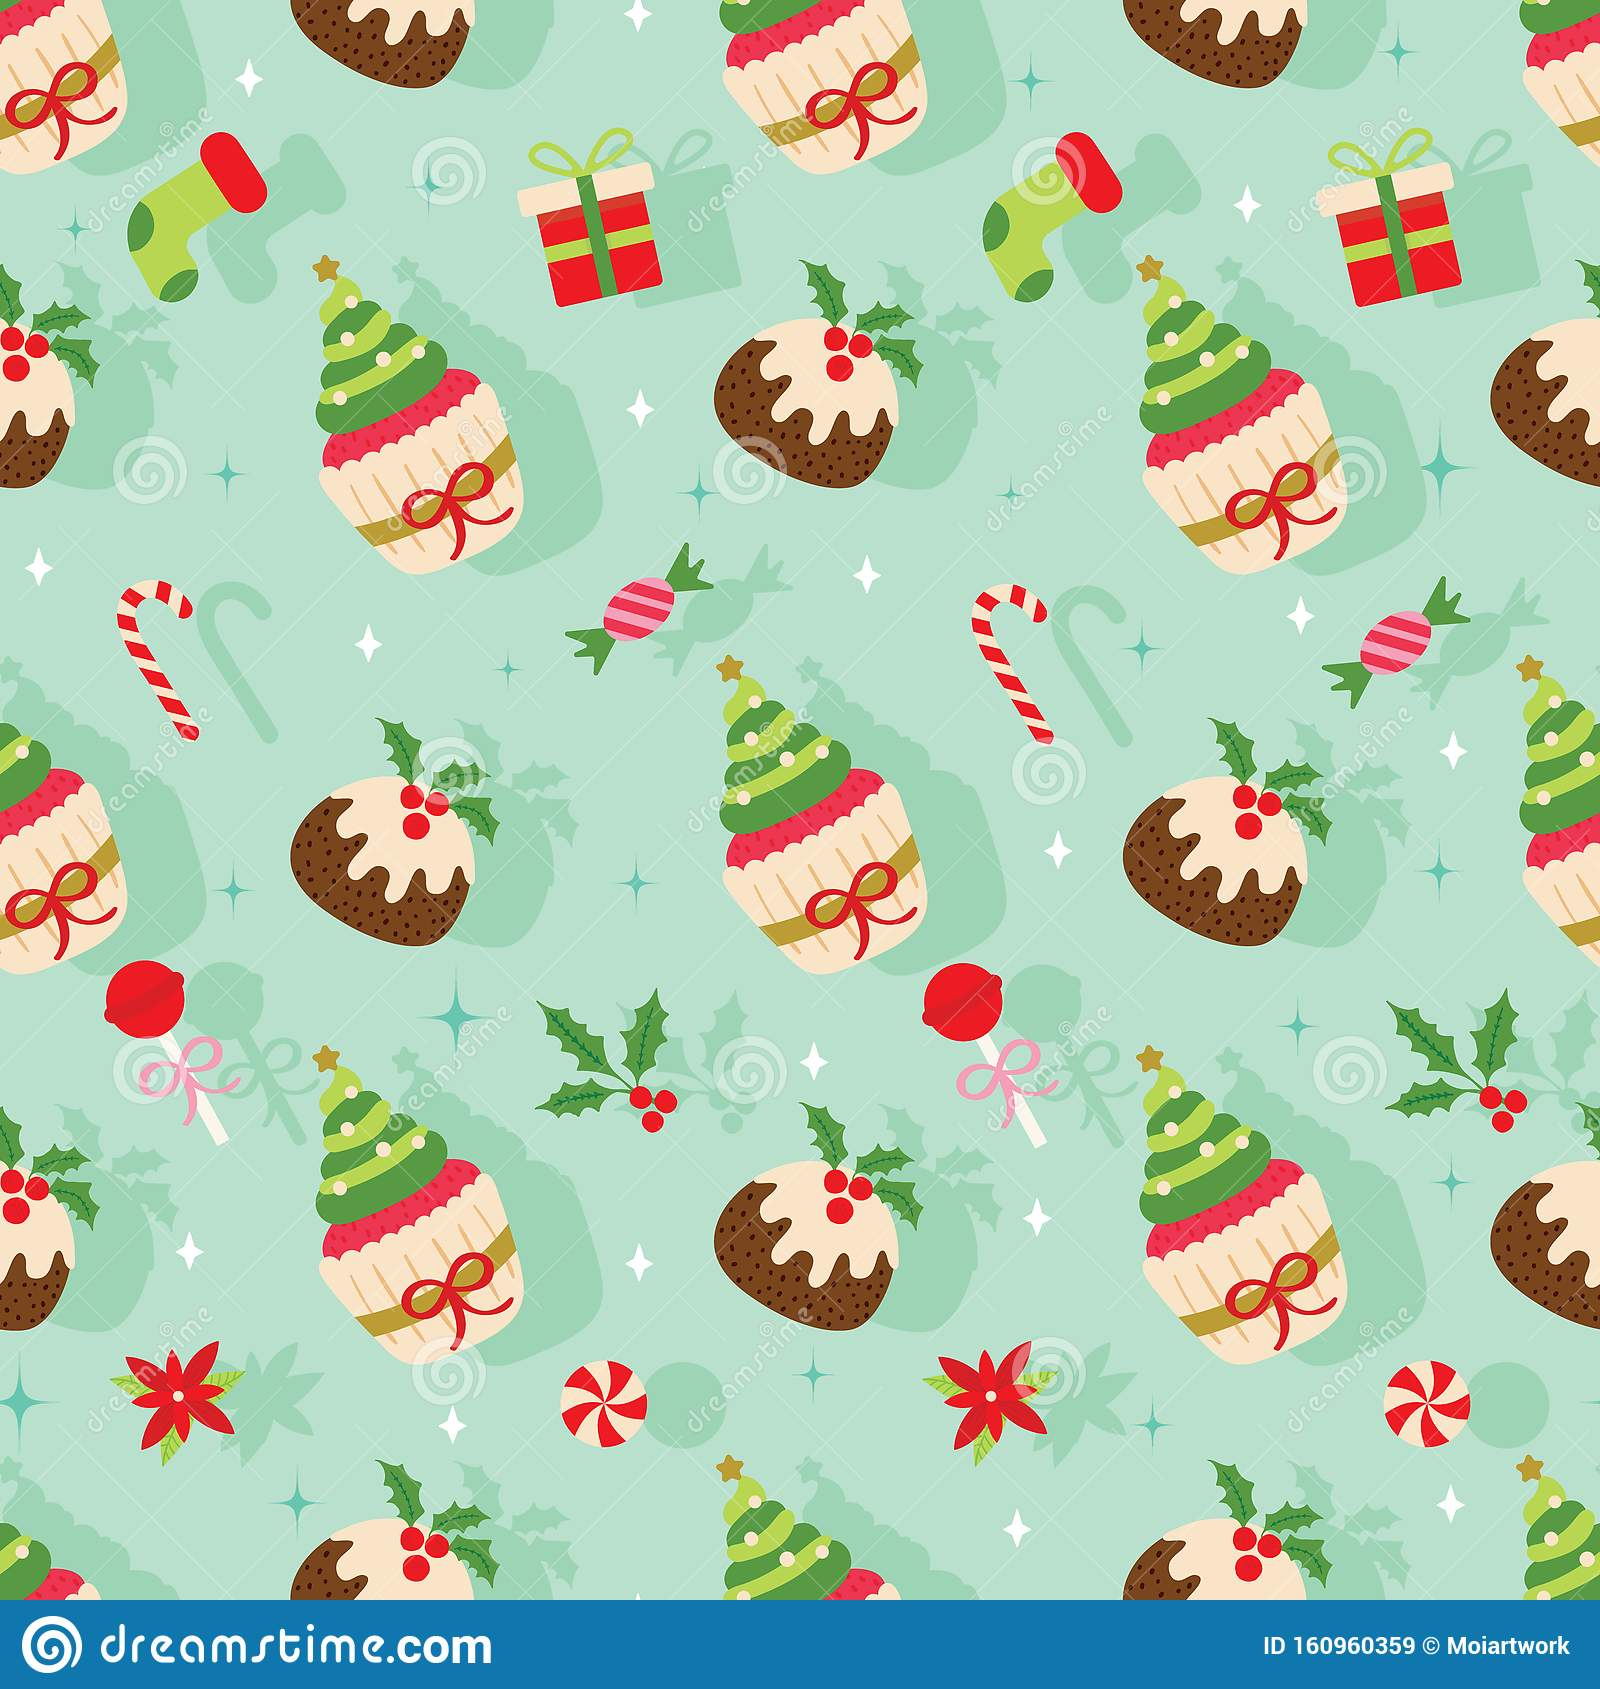 christmas seamless pattern pudding cupcake taffy candy cane socks gift etc%E2%80%A6 shadow background cute holiday vector 160960359